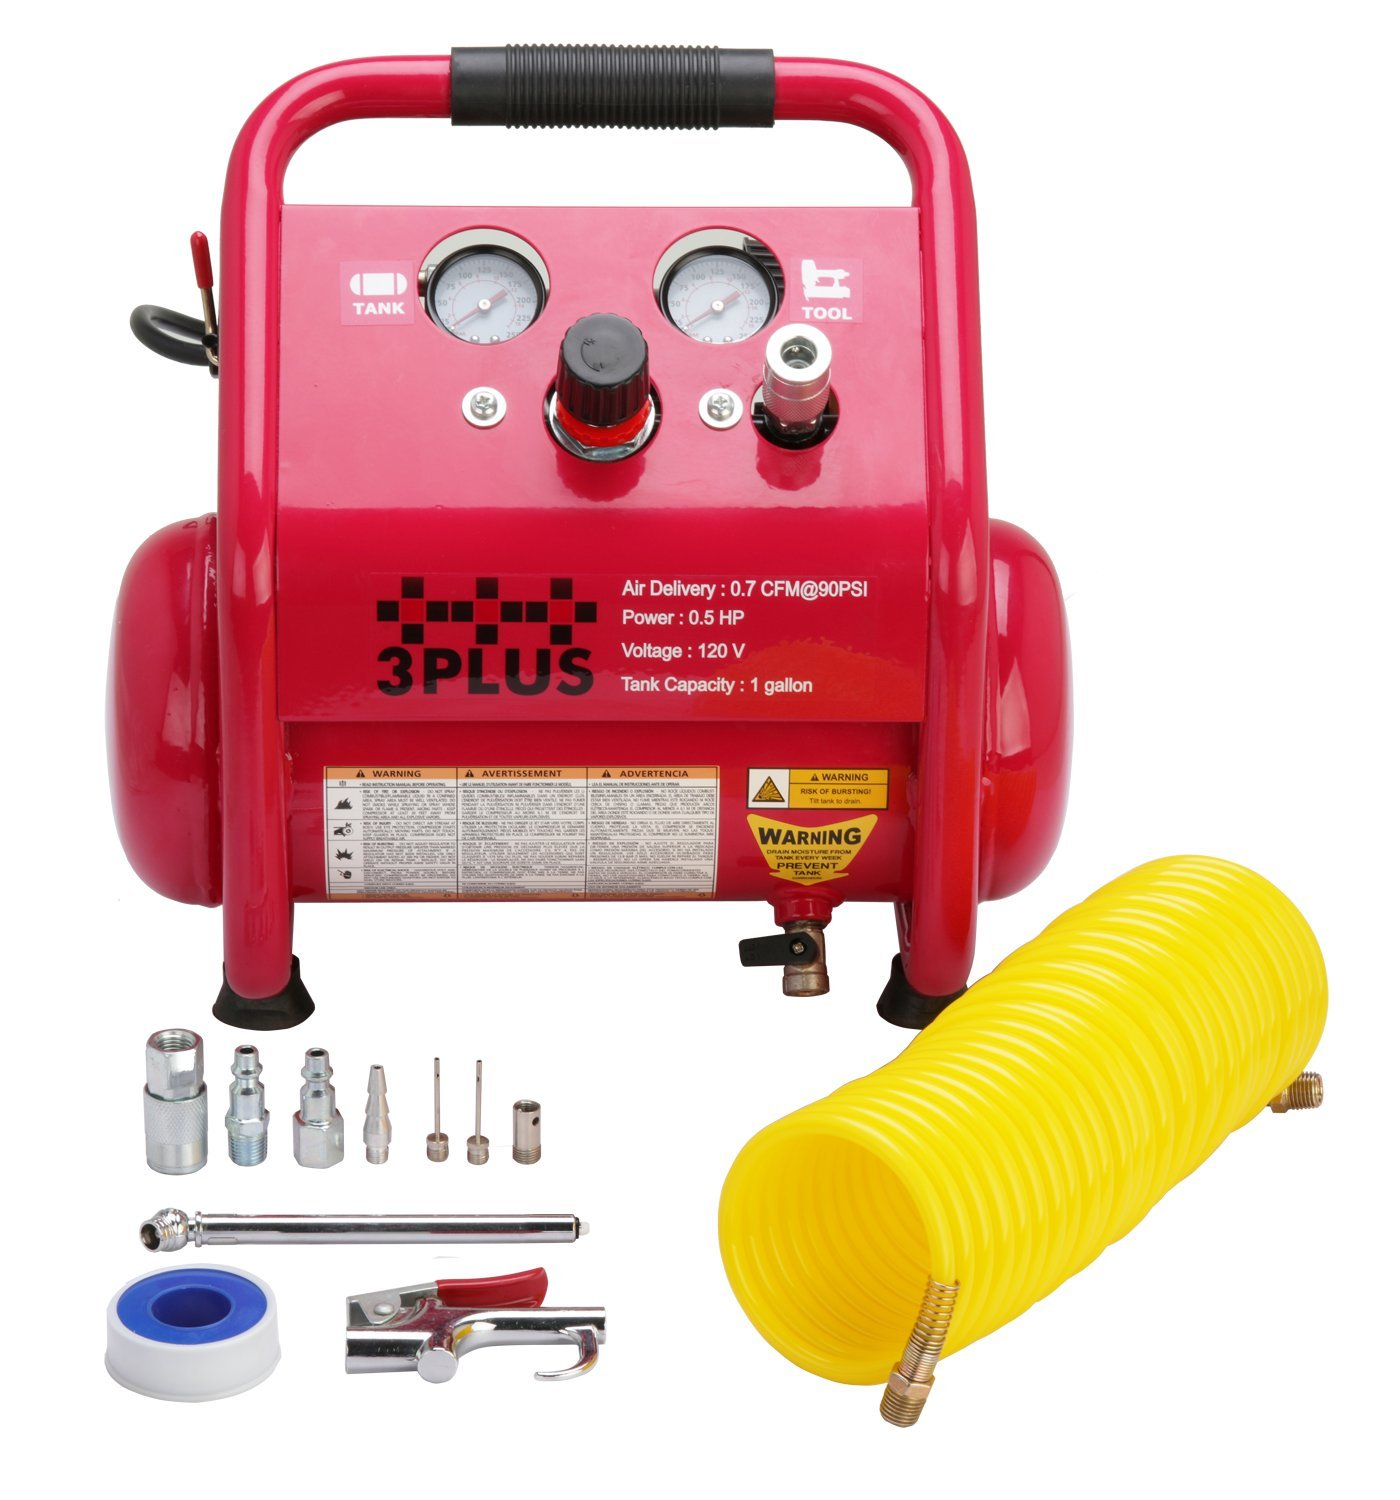 Amazon.com: 3PLUS HCB0504M02 1 Gallon Quiet Air Compressor, Portable, Oil-Free Air Compressor, w/11 Piece Accessory Kit Including Air Hose & Blow Gun: Home ...